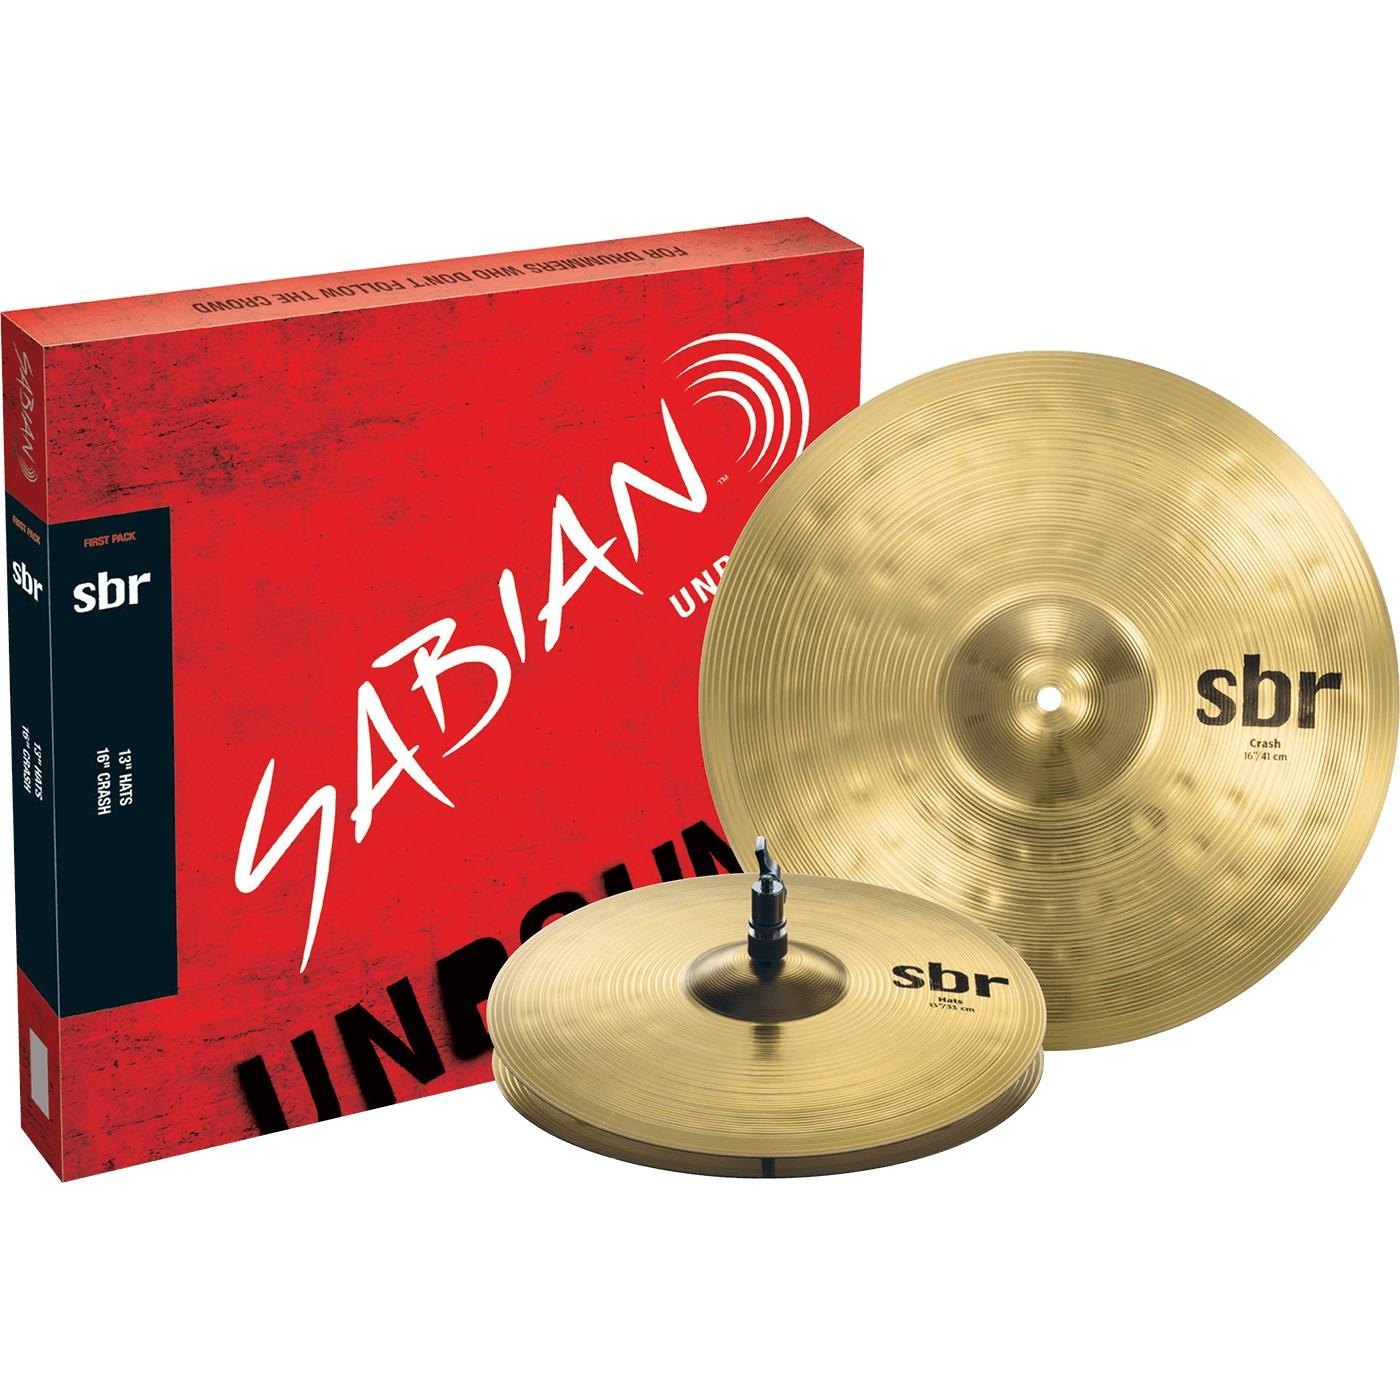 Комплект тарелок SABIAN SBR5001 First Pack